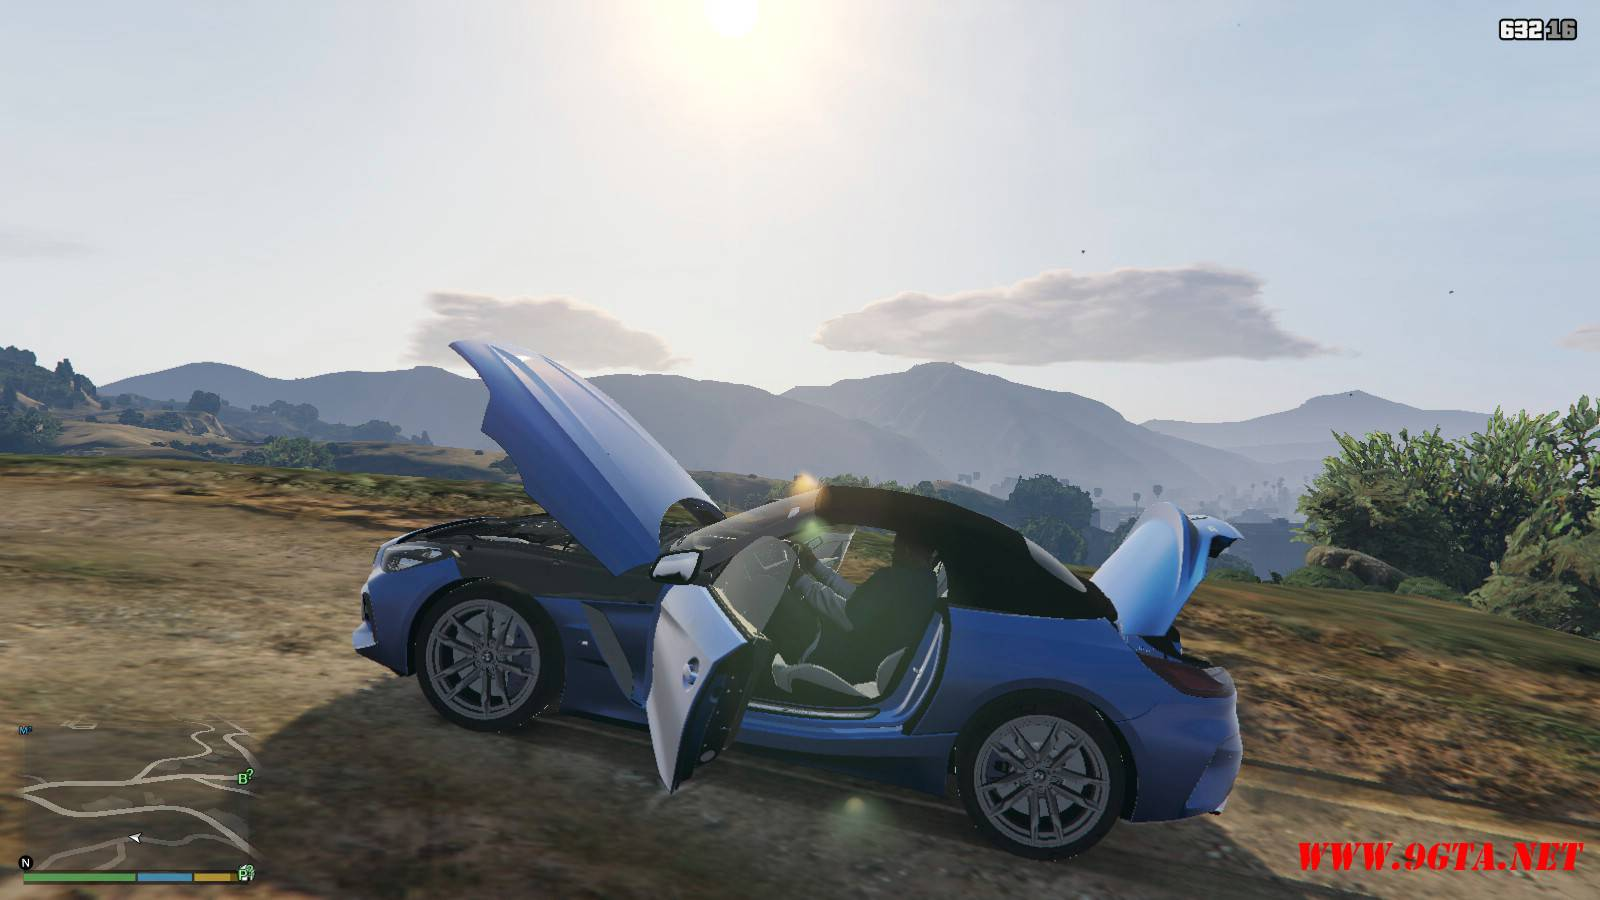 2019 BMW Z4 M40i v2.0 Mod For GTA5 (14)